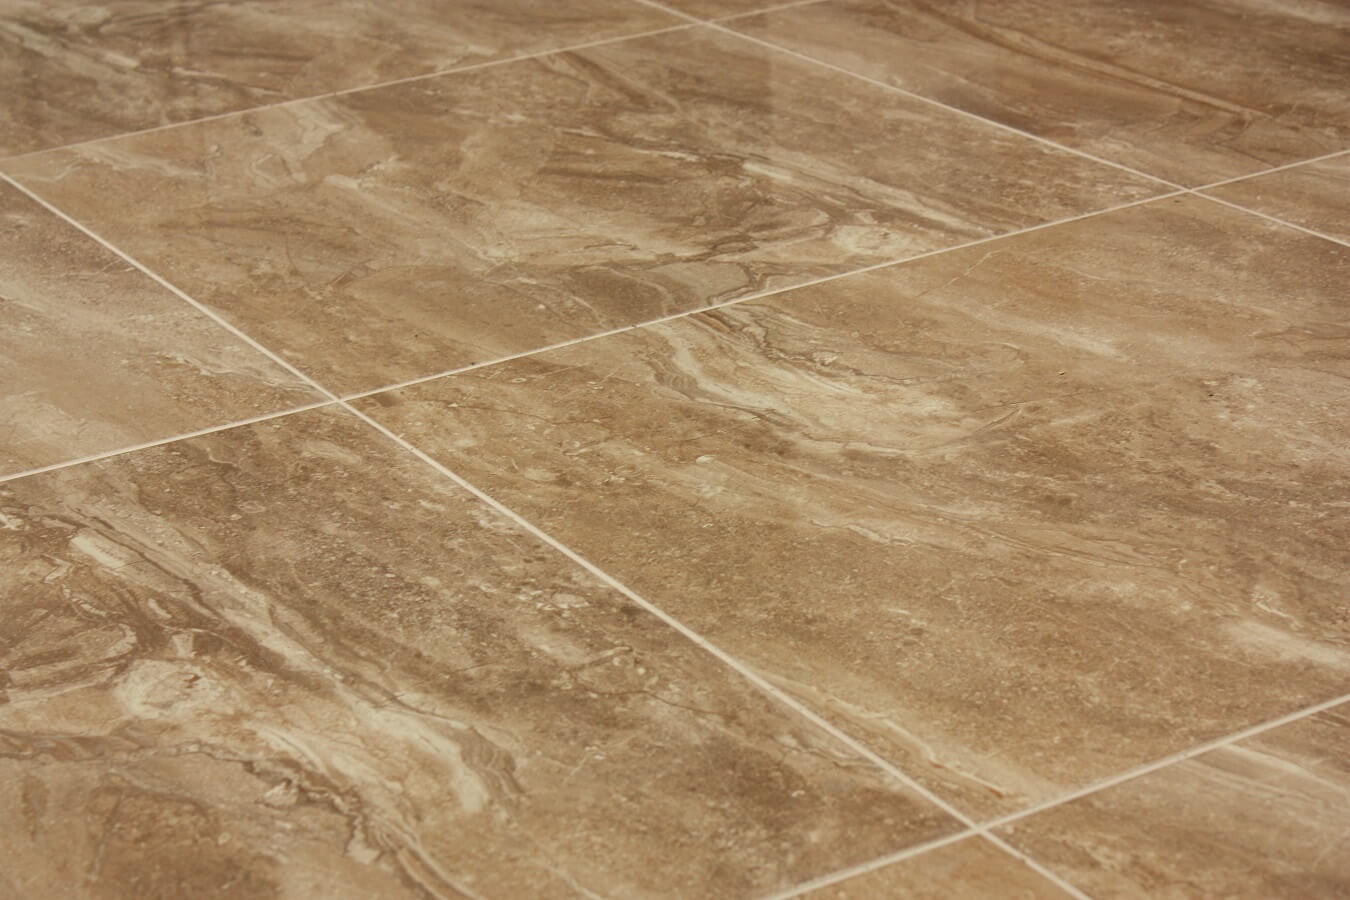 Marble Effect Floor Tiles In A Beautiful Moka Coffee Colour - Large marble bathroom tiles